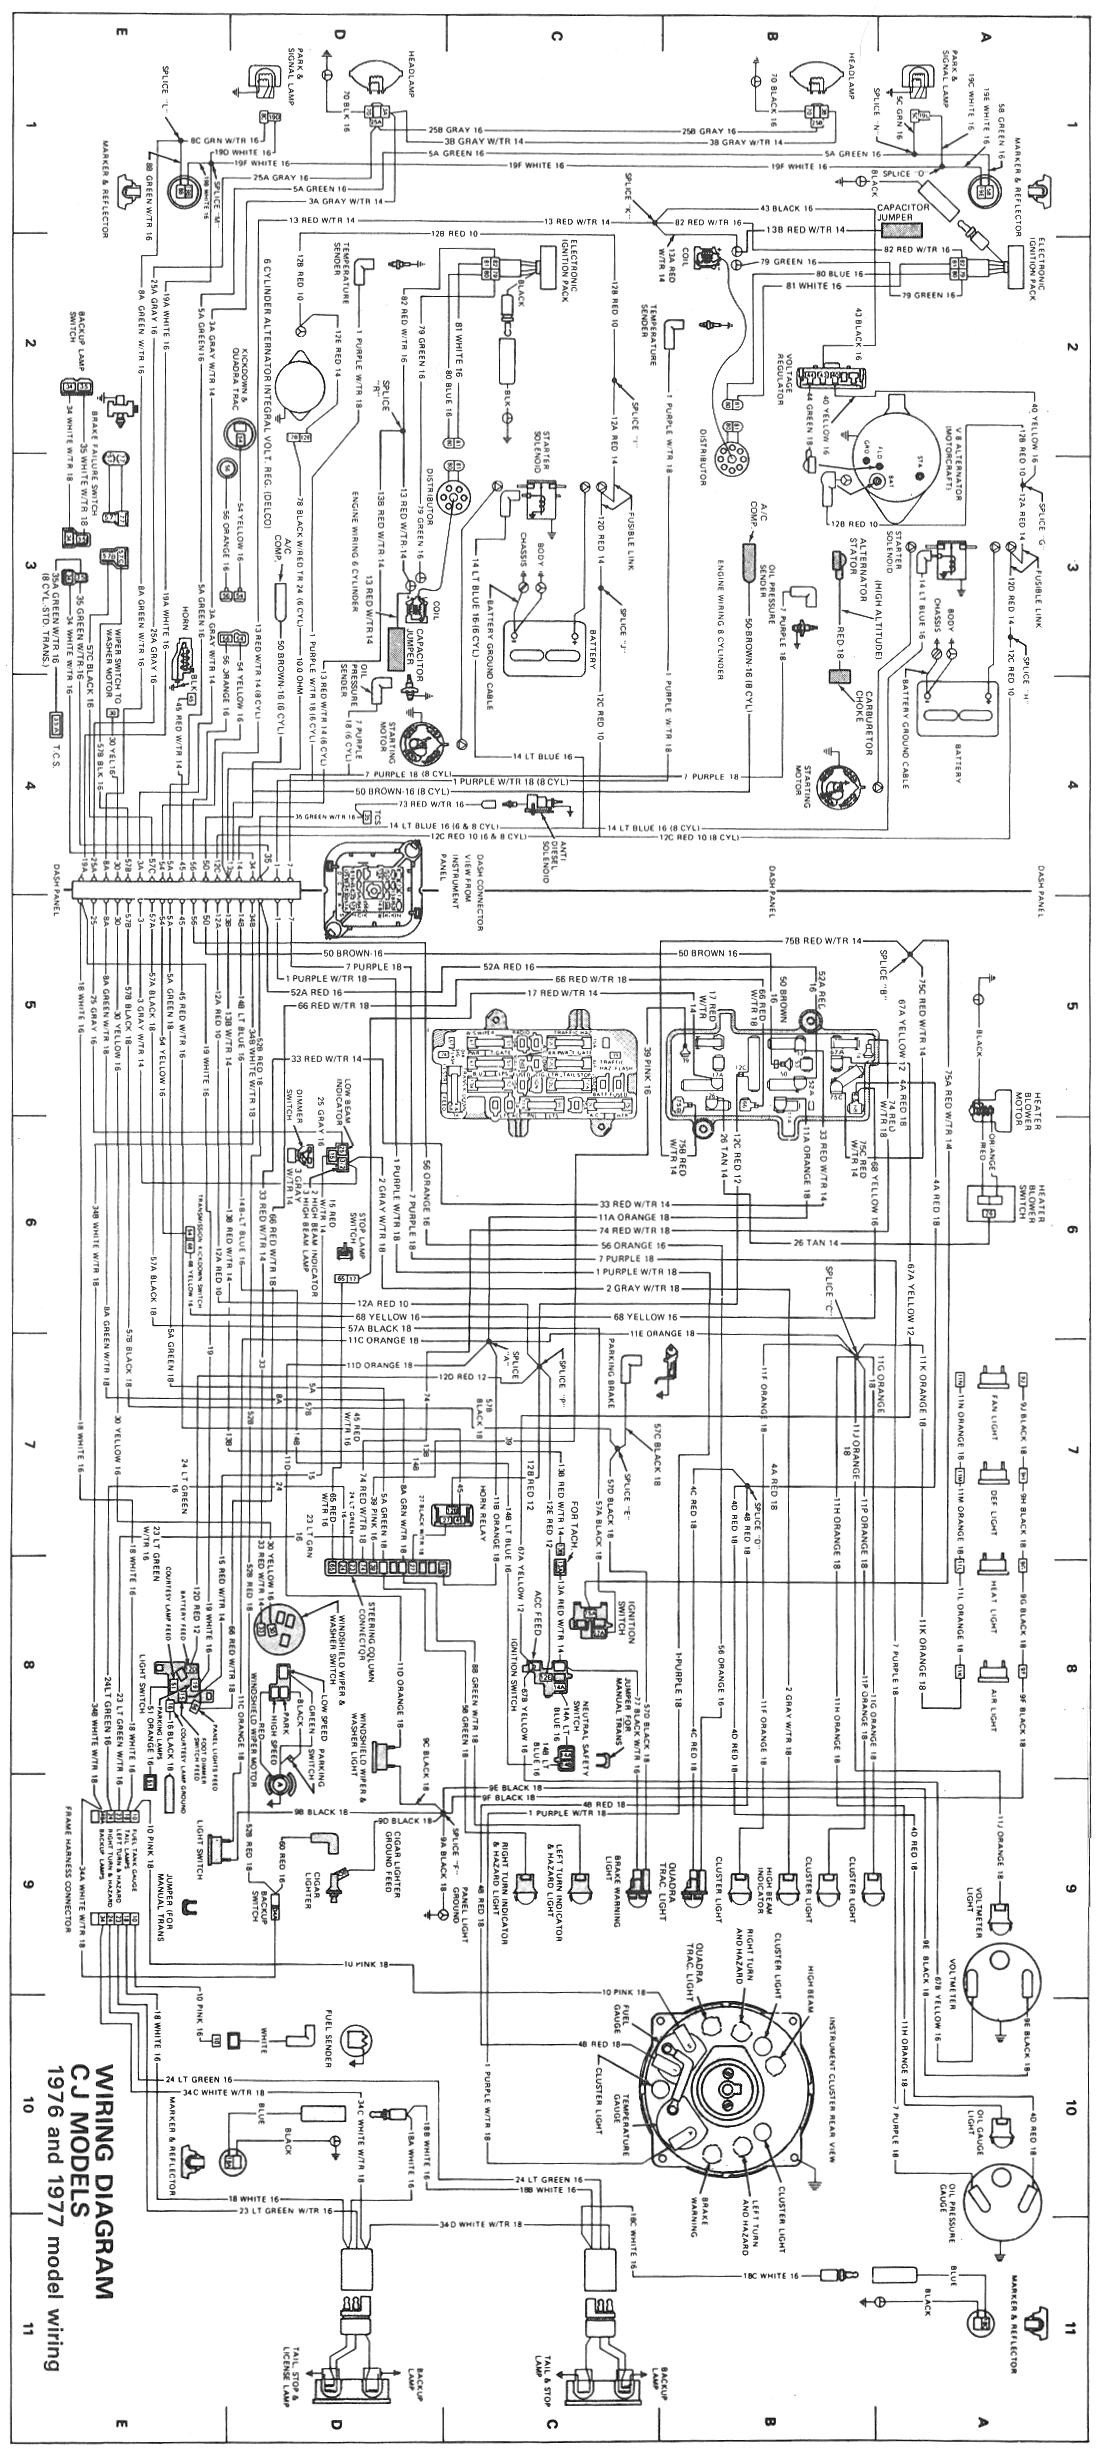 1979 Oldsmobile Wiring Diagram Real Schematics Images Gallery